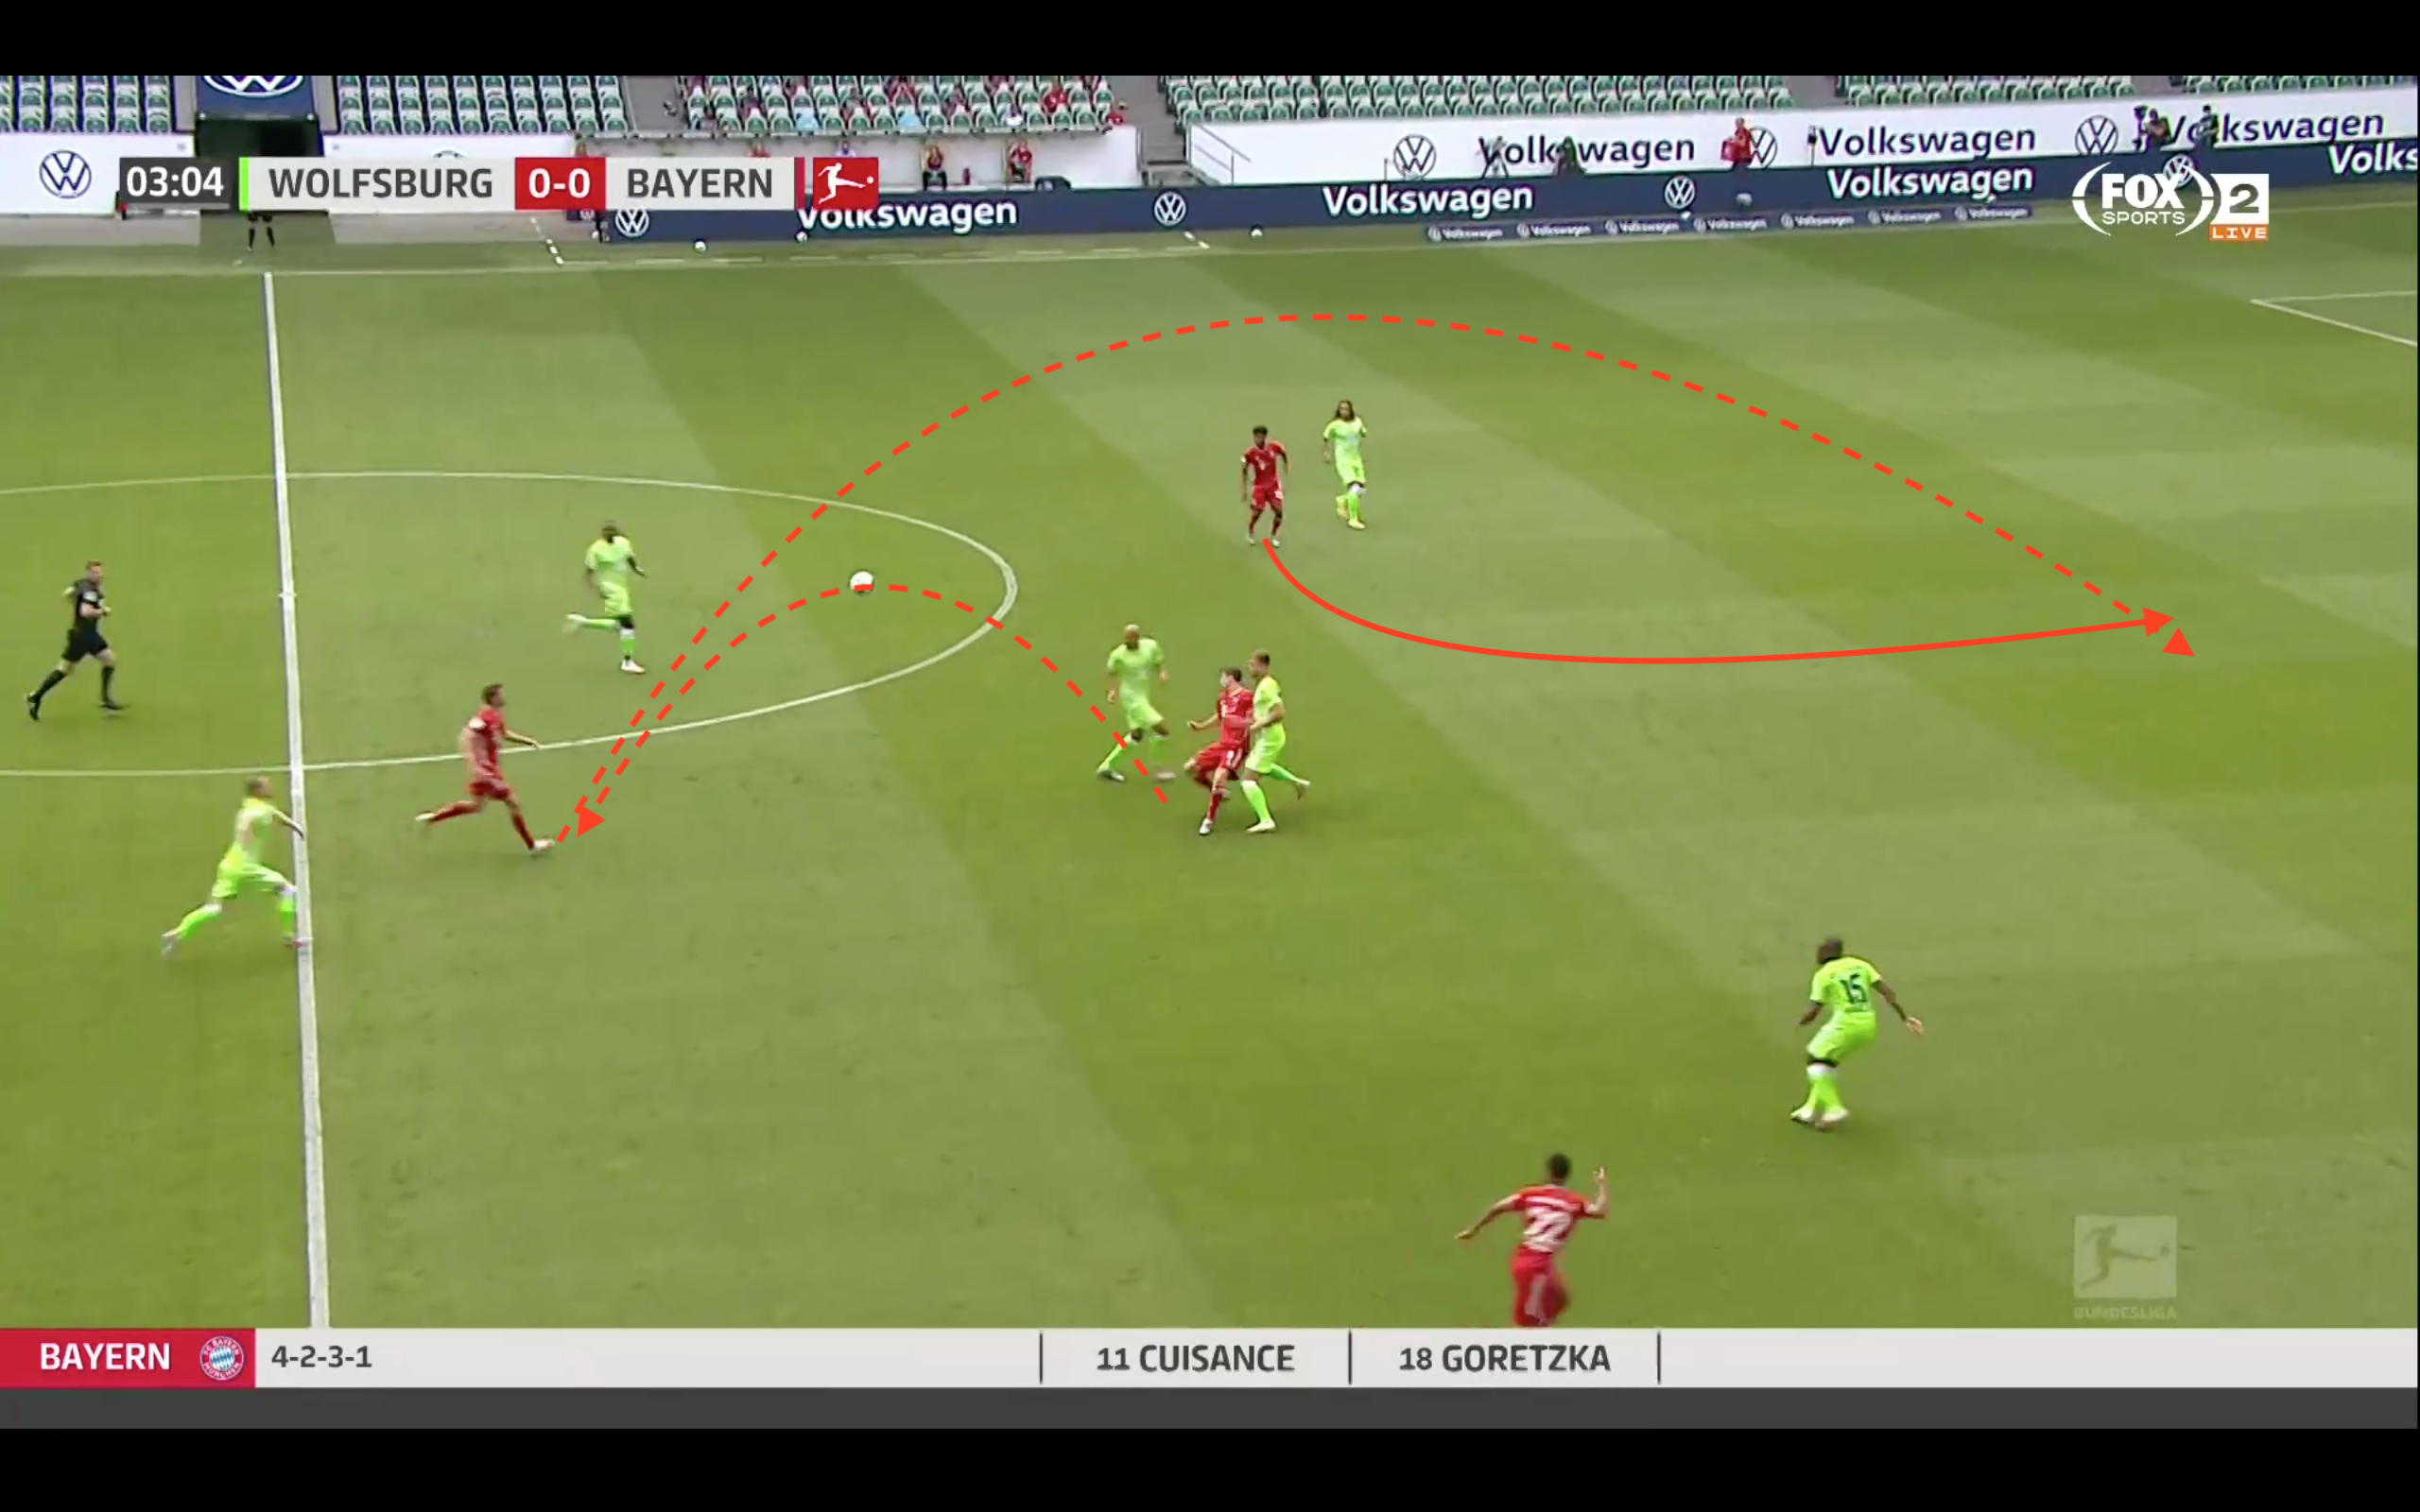 Bundesliga 2019/20: Wolfsburg vs Bayern Munich- tactical analysis tactics